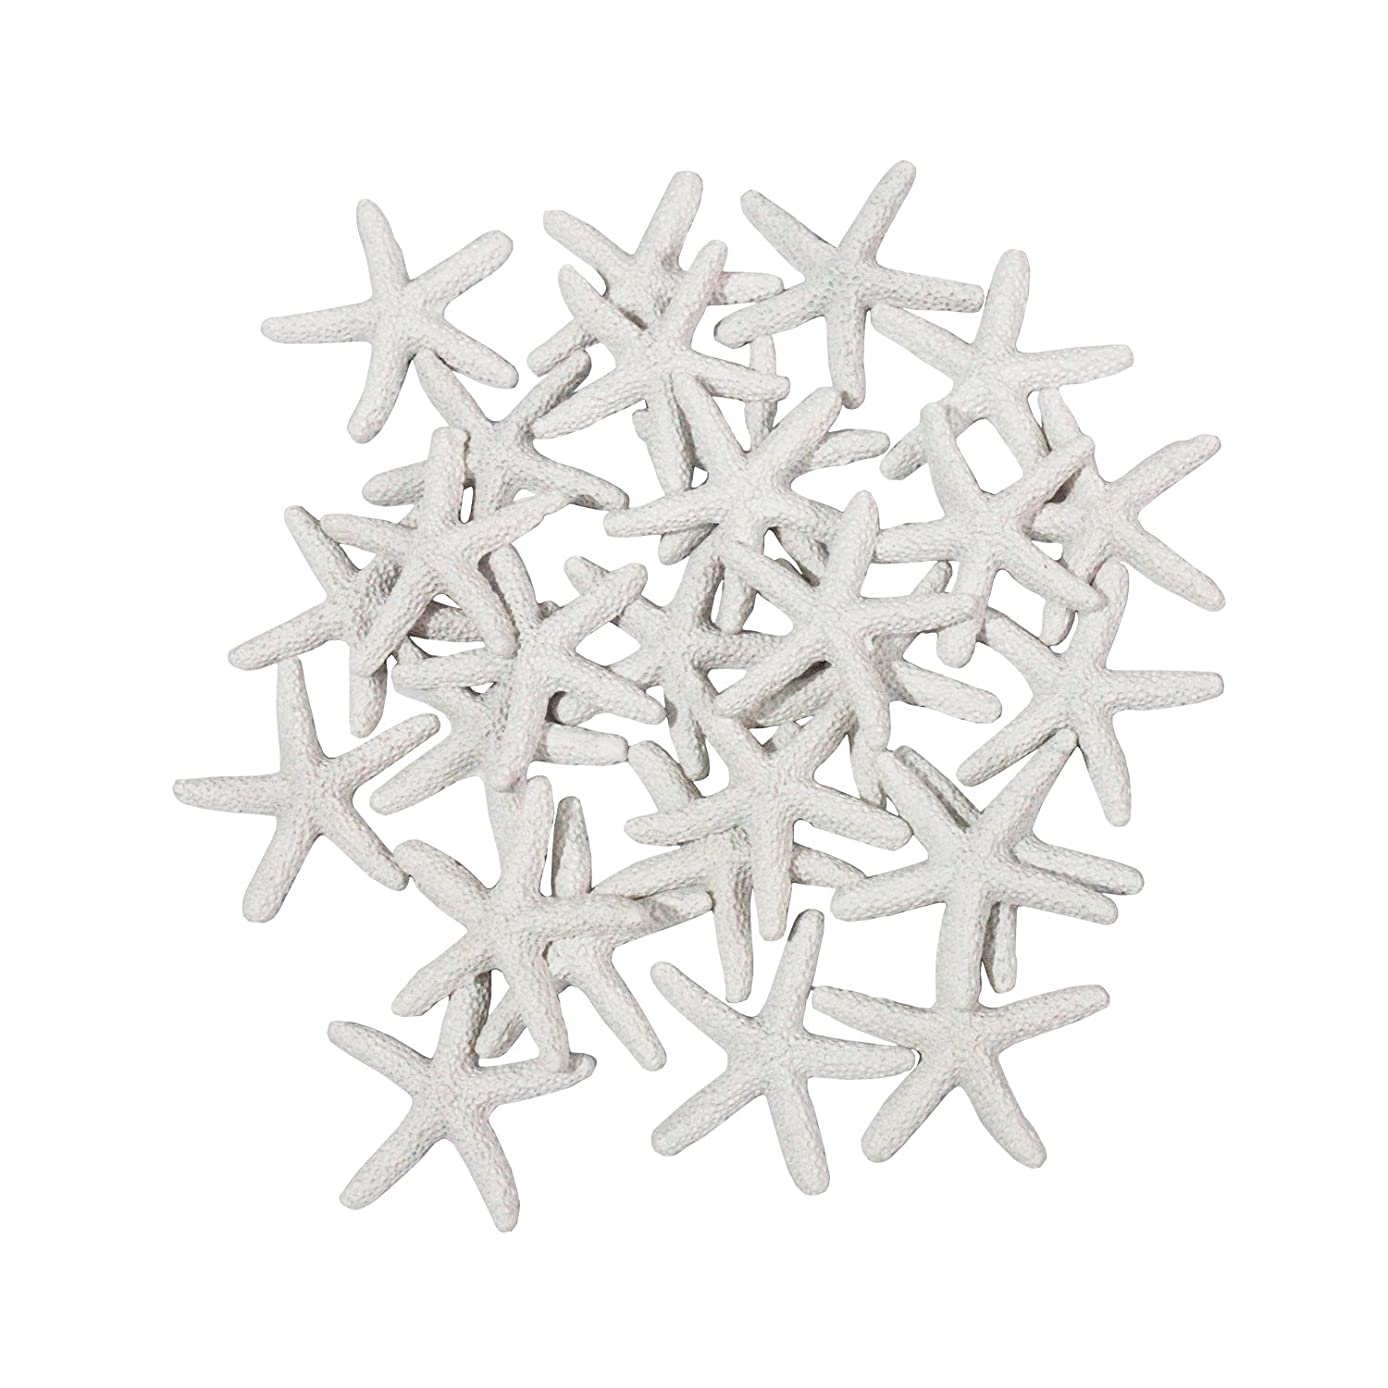 LJY 25 Pieces White Resin Pencil Finger Starfish for Wedding Decor, Home Decor and Craft Project, 2.3 Inches